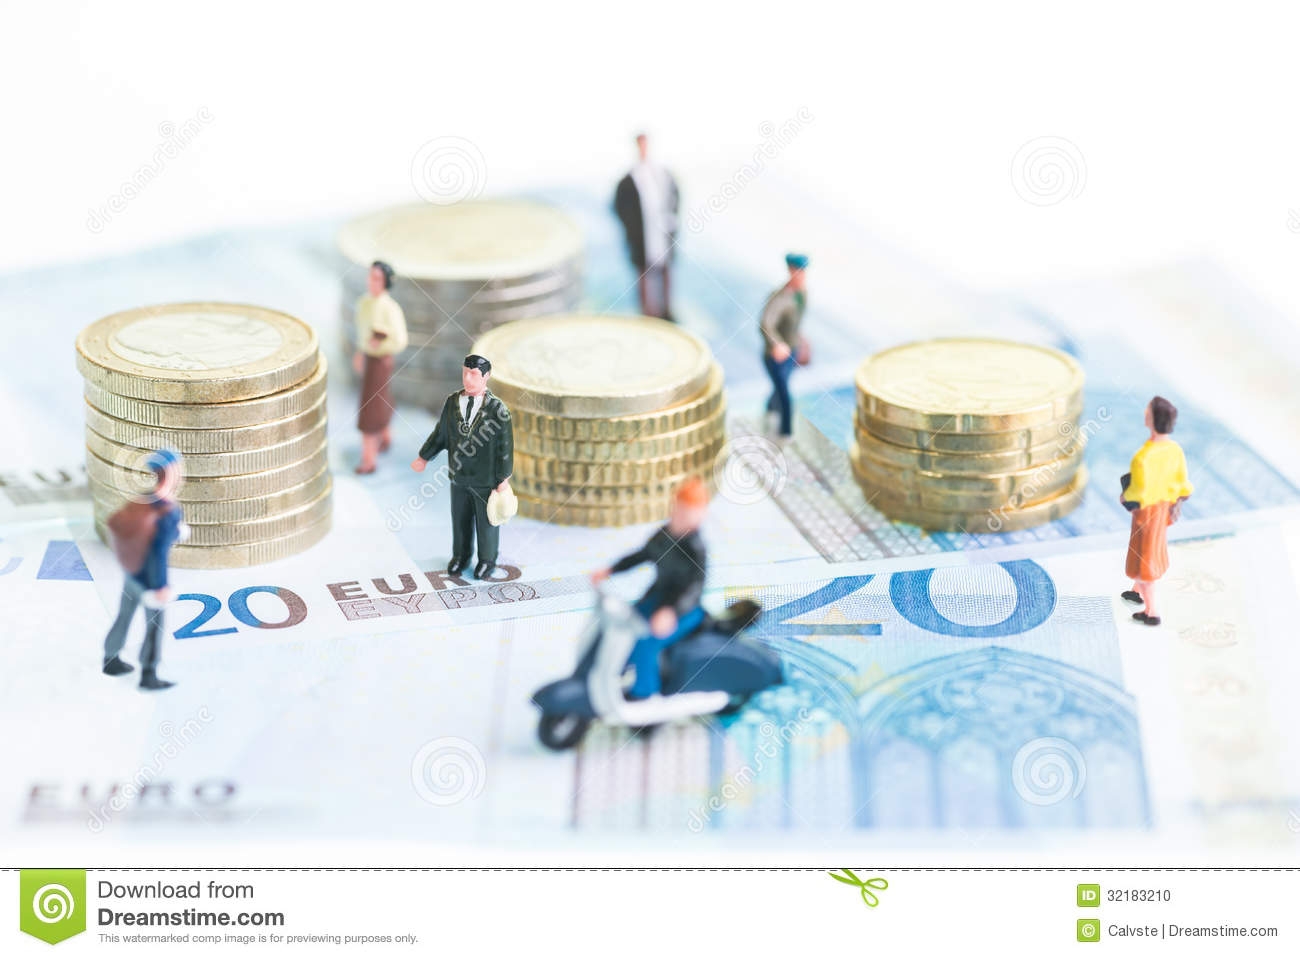 Miniature people on 20 Euro banknotes and Euro coins